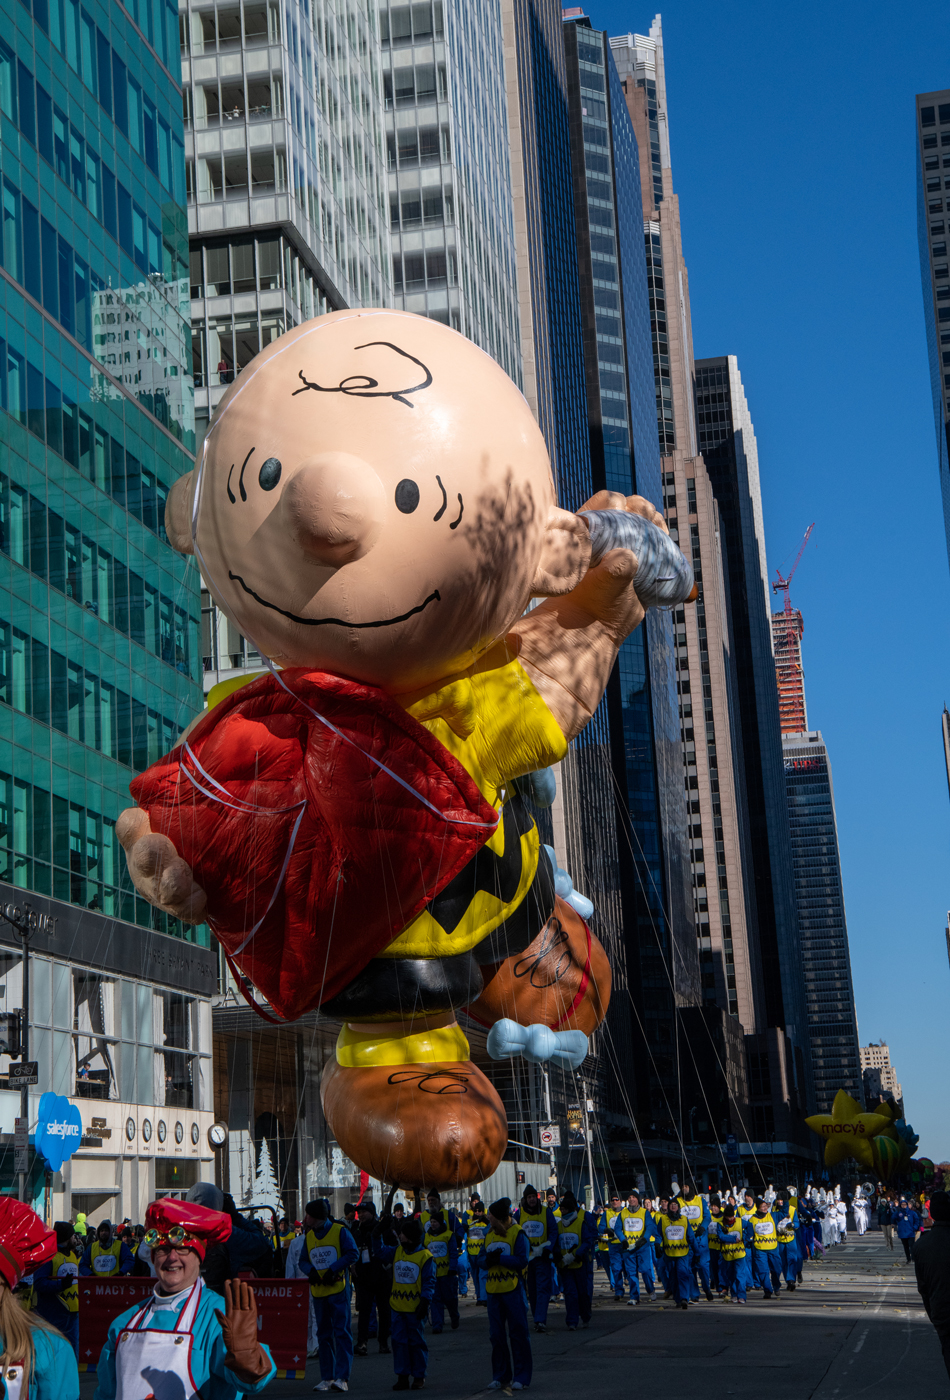 A giant Charlie Brown balloon hovers above the Macy's Thanksgiving Day Parade route in New York City on Nov. 22, 2018.